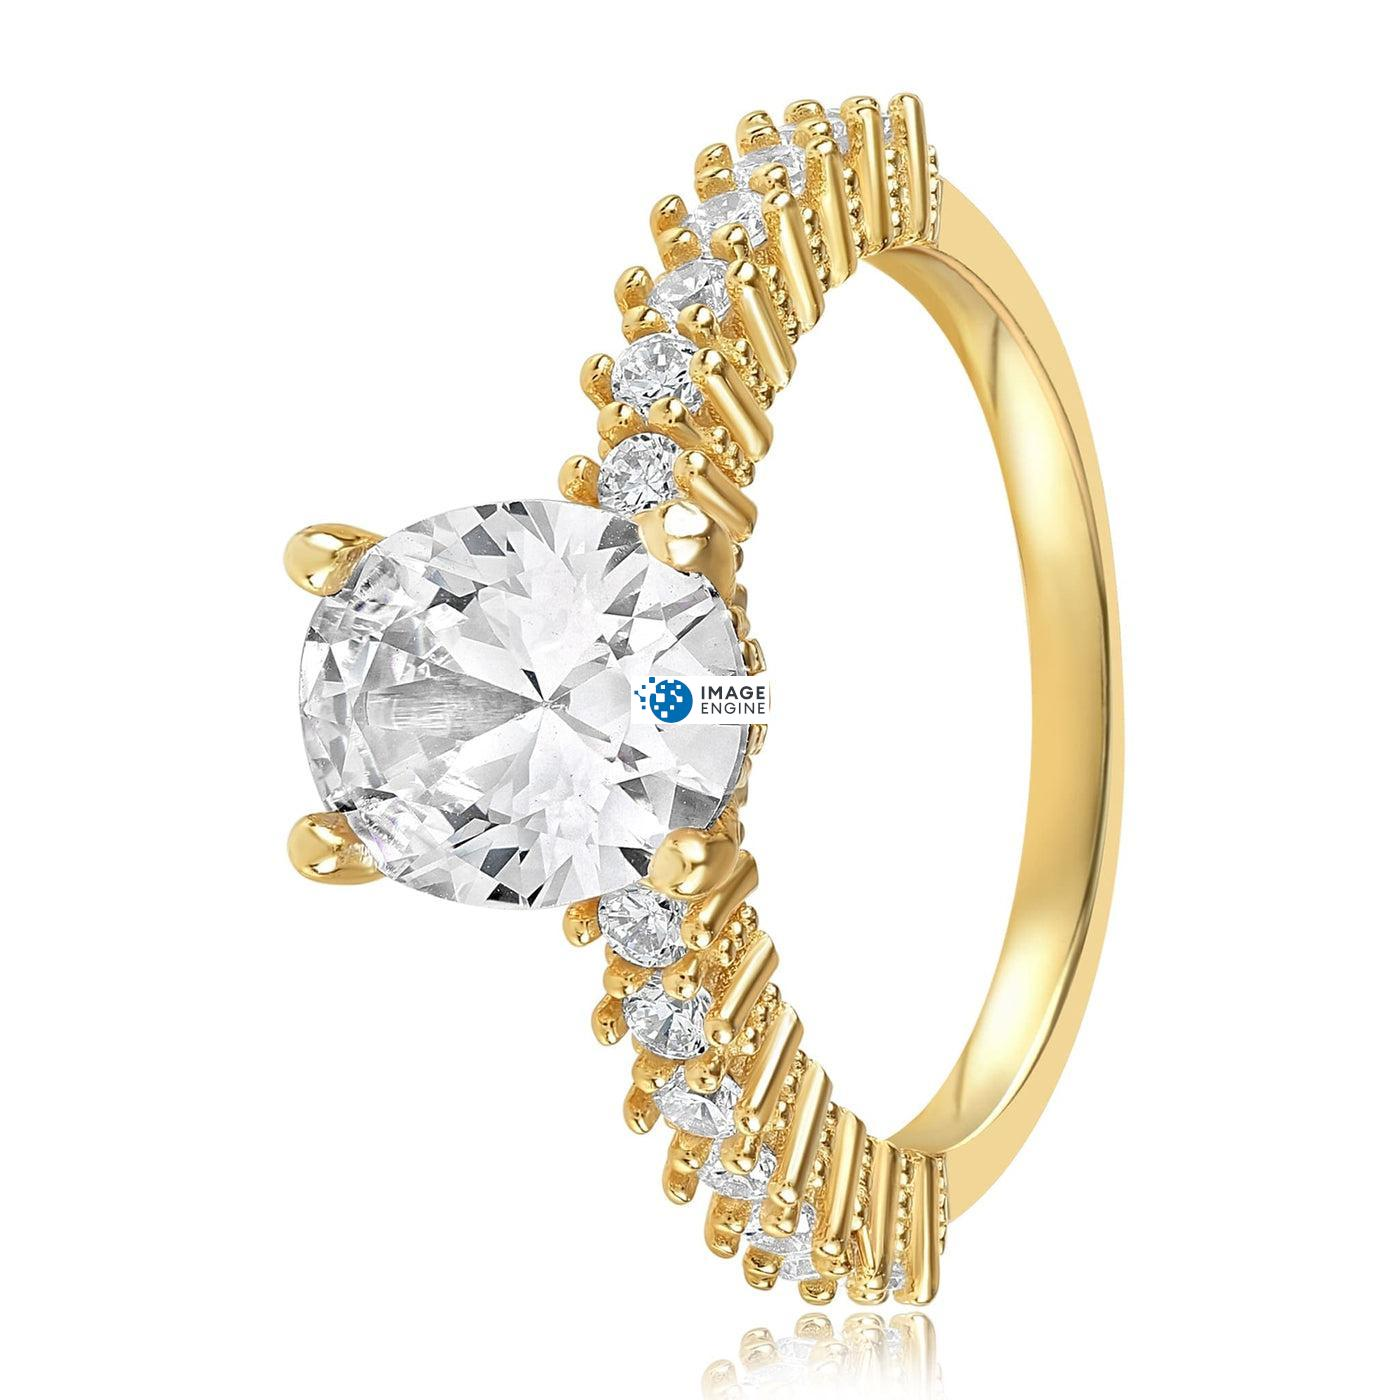 Cara Zirconia Ring - Side View - 18K Yellow Gold Vermeil